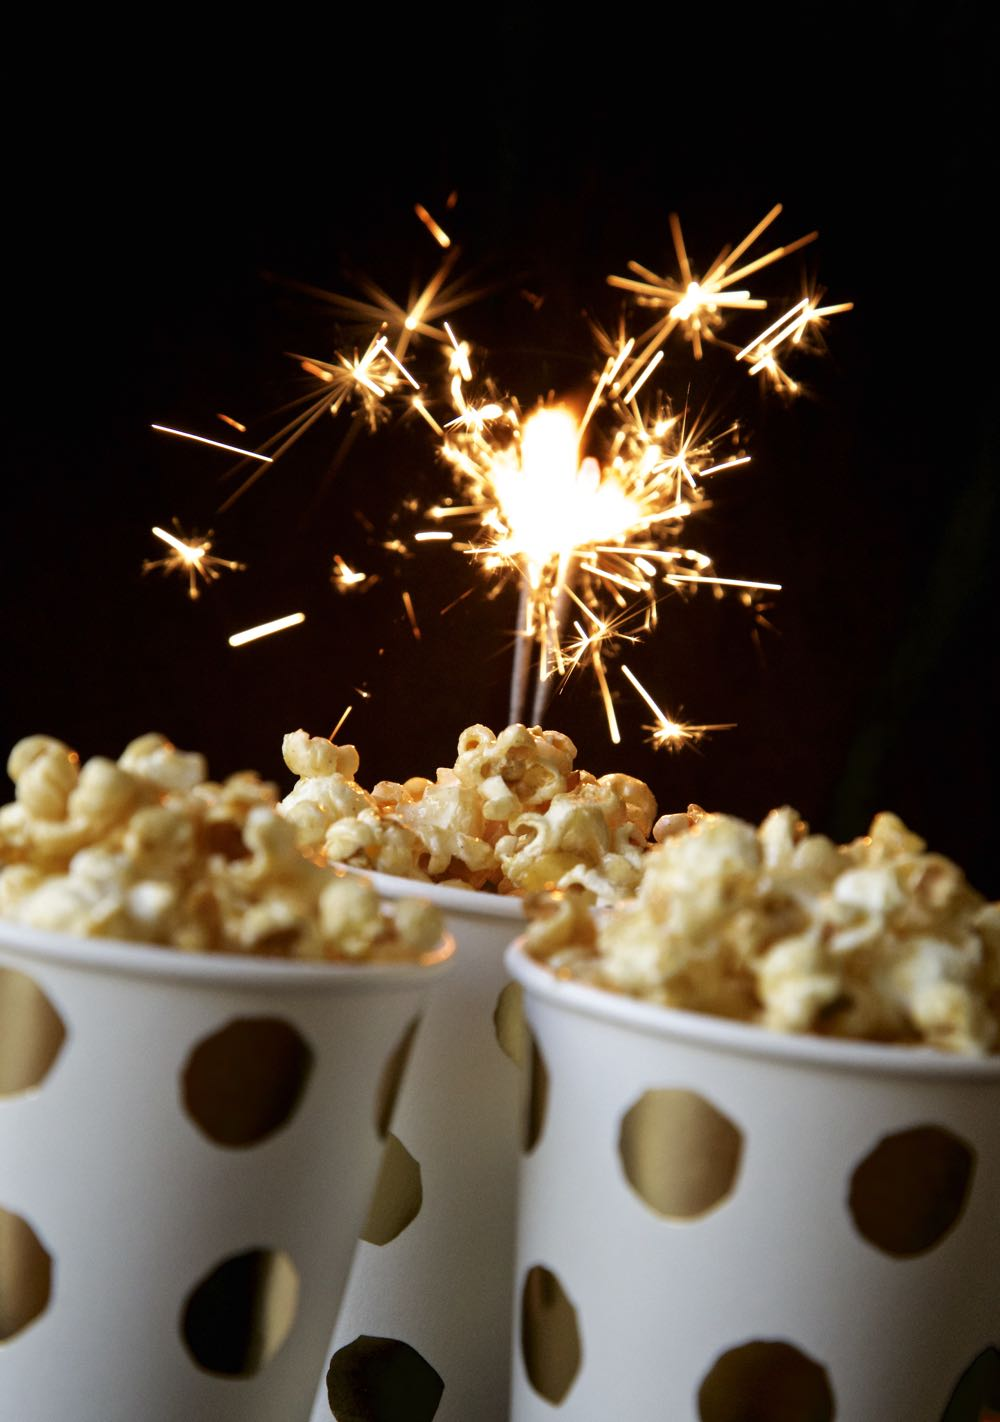 Bonfire Night Toffee Apple Popcorn - Vegan Toffee Apple Popcorn with sparklers